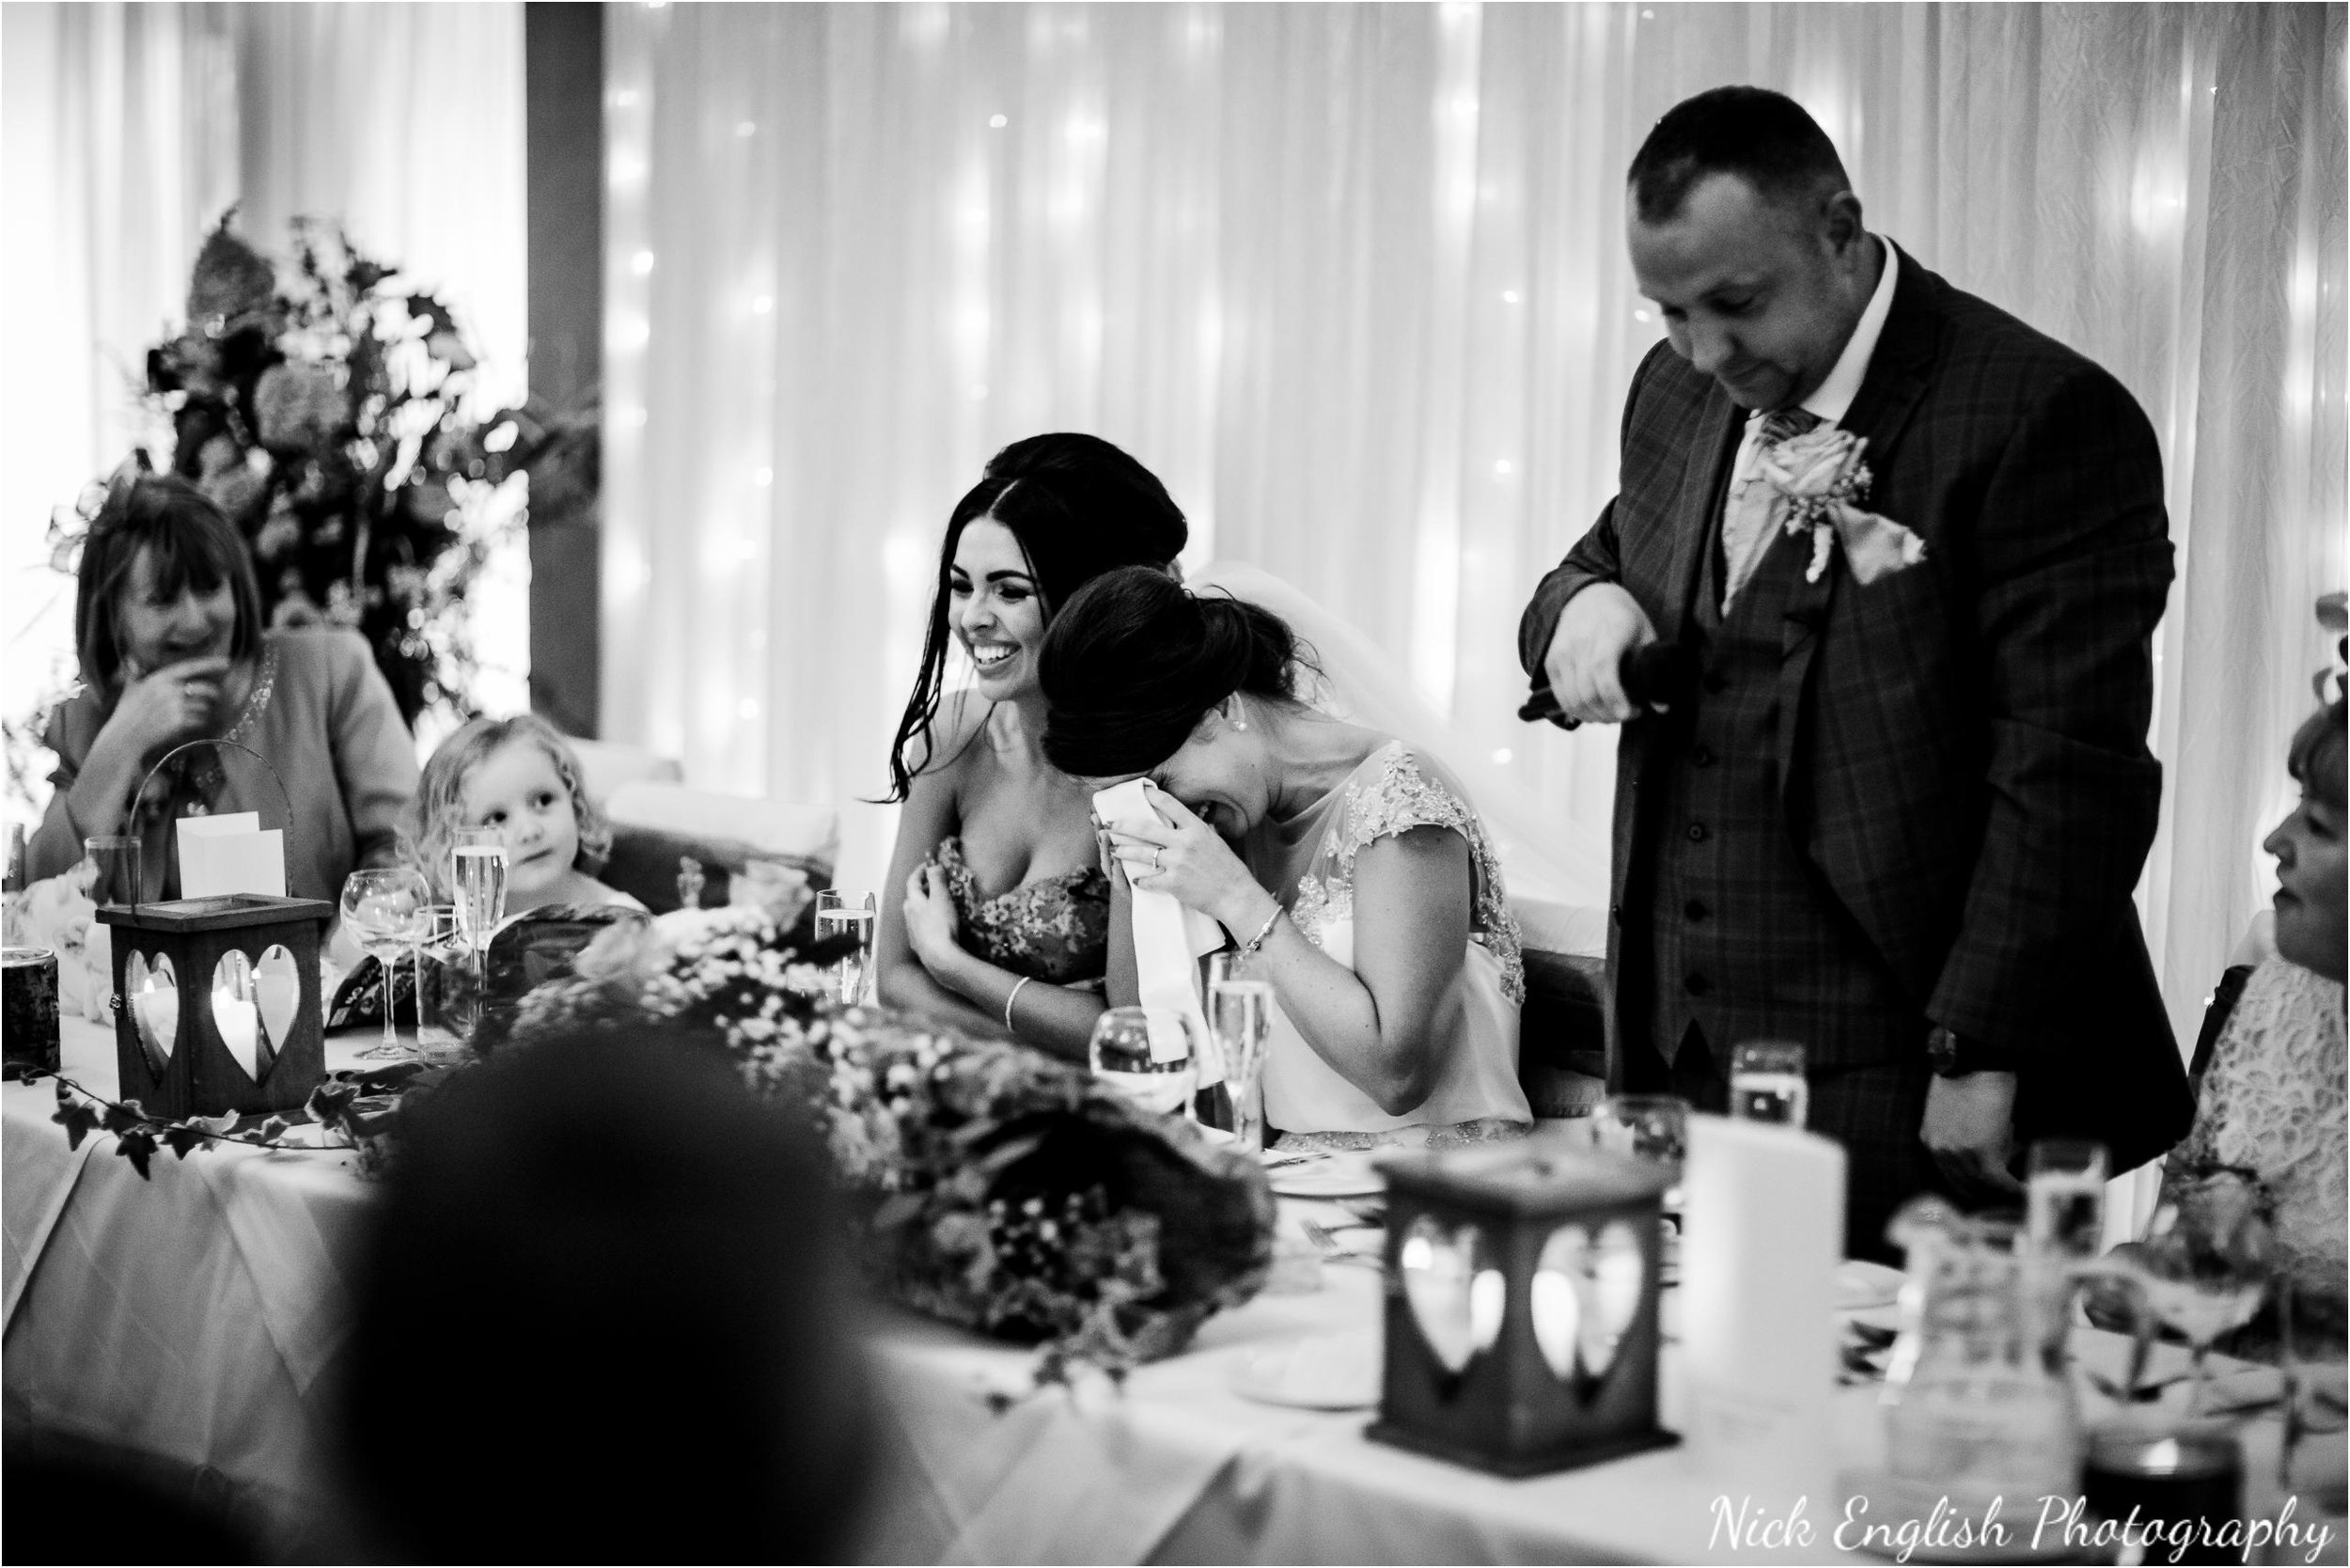 Stacey-Ash-Wedding-Photographs-Stanley-House-Preston-Lancashire-162.jpg